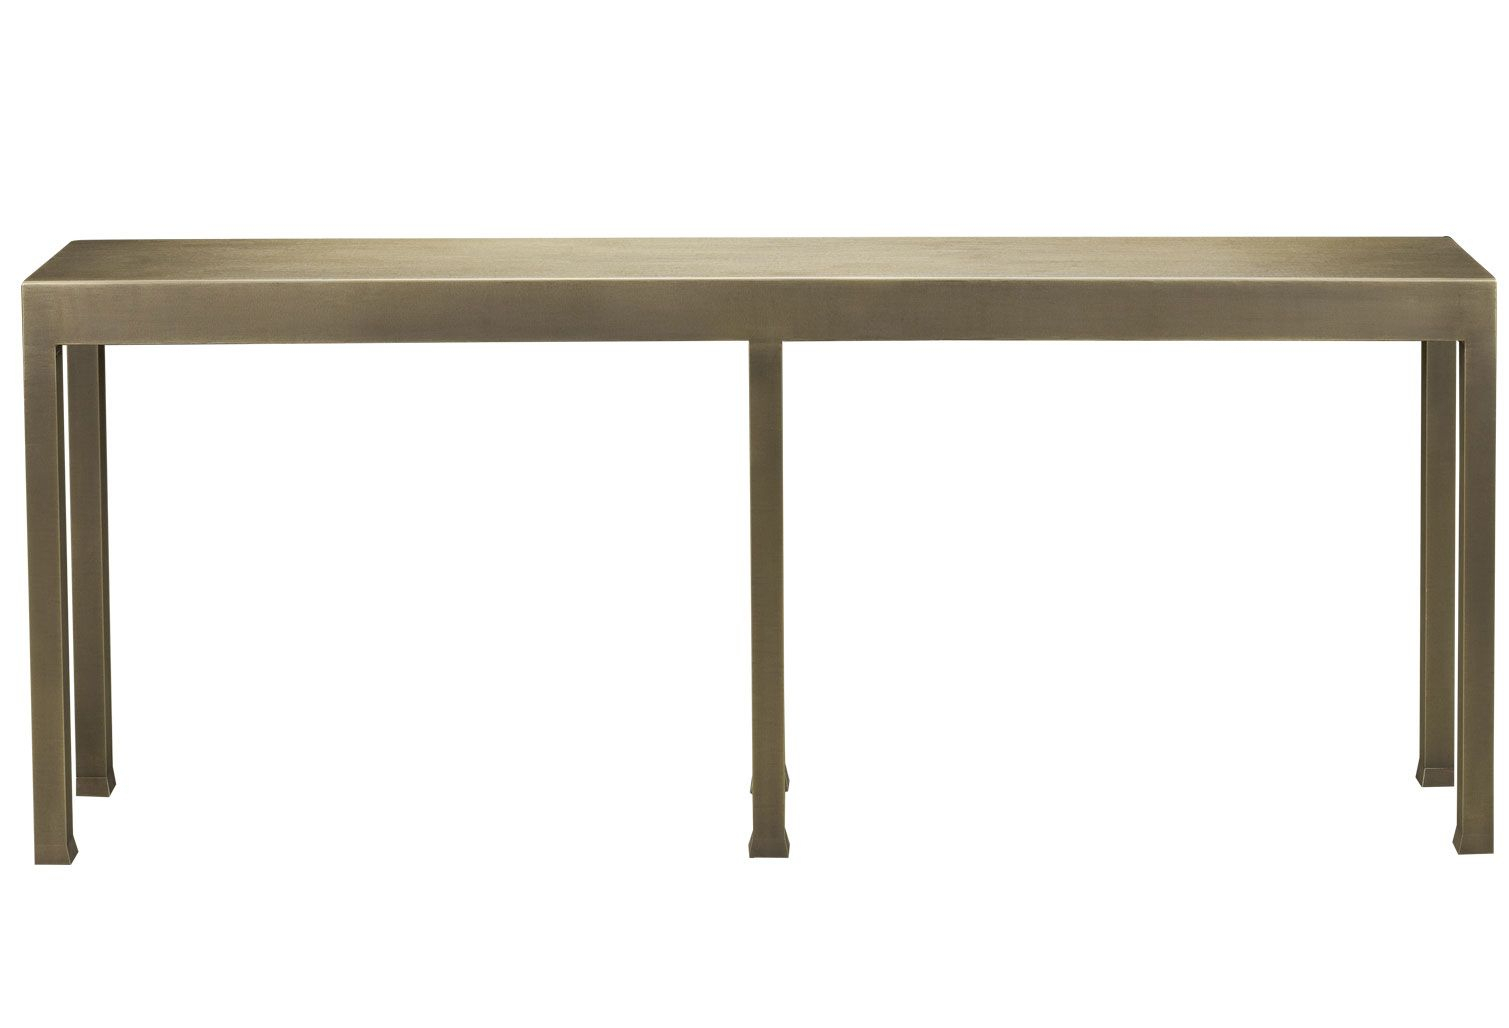 Gong Consolepromemoria – Switch Modern Pertaining To Switch Console Tables (View 10 of 30)